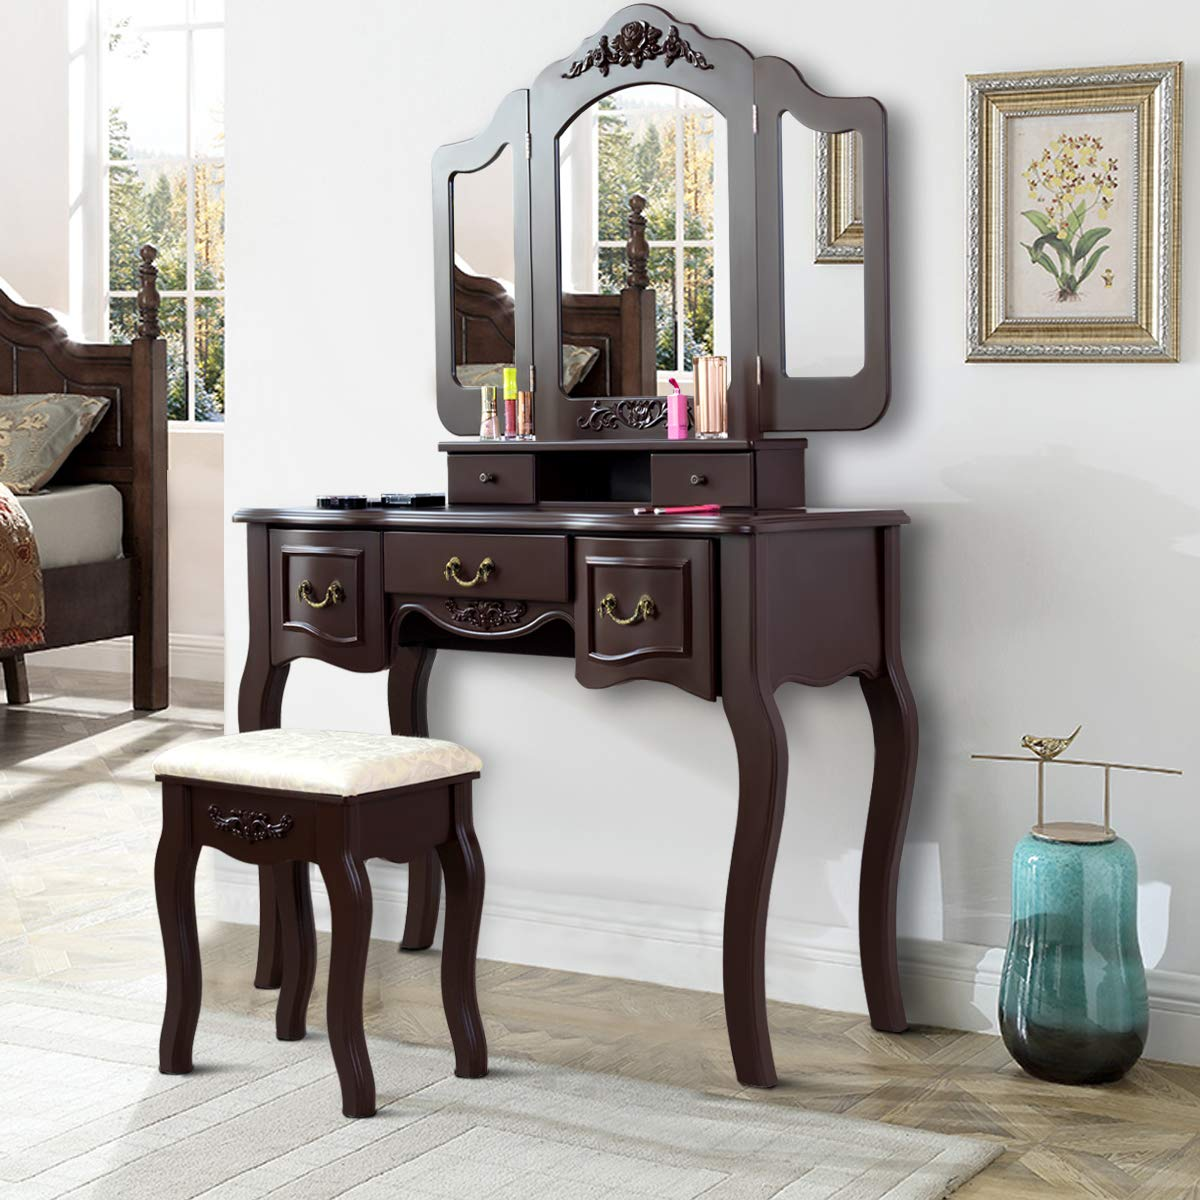 Giantex Vanity Dressing Table Set with Stool, Tri Folding Vintage Vanity Makeup Dressing Table Set 5 Drawers Christmas, Large Vanities with Bench (Brown)